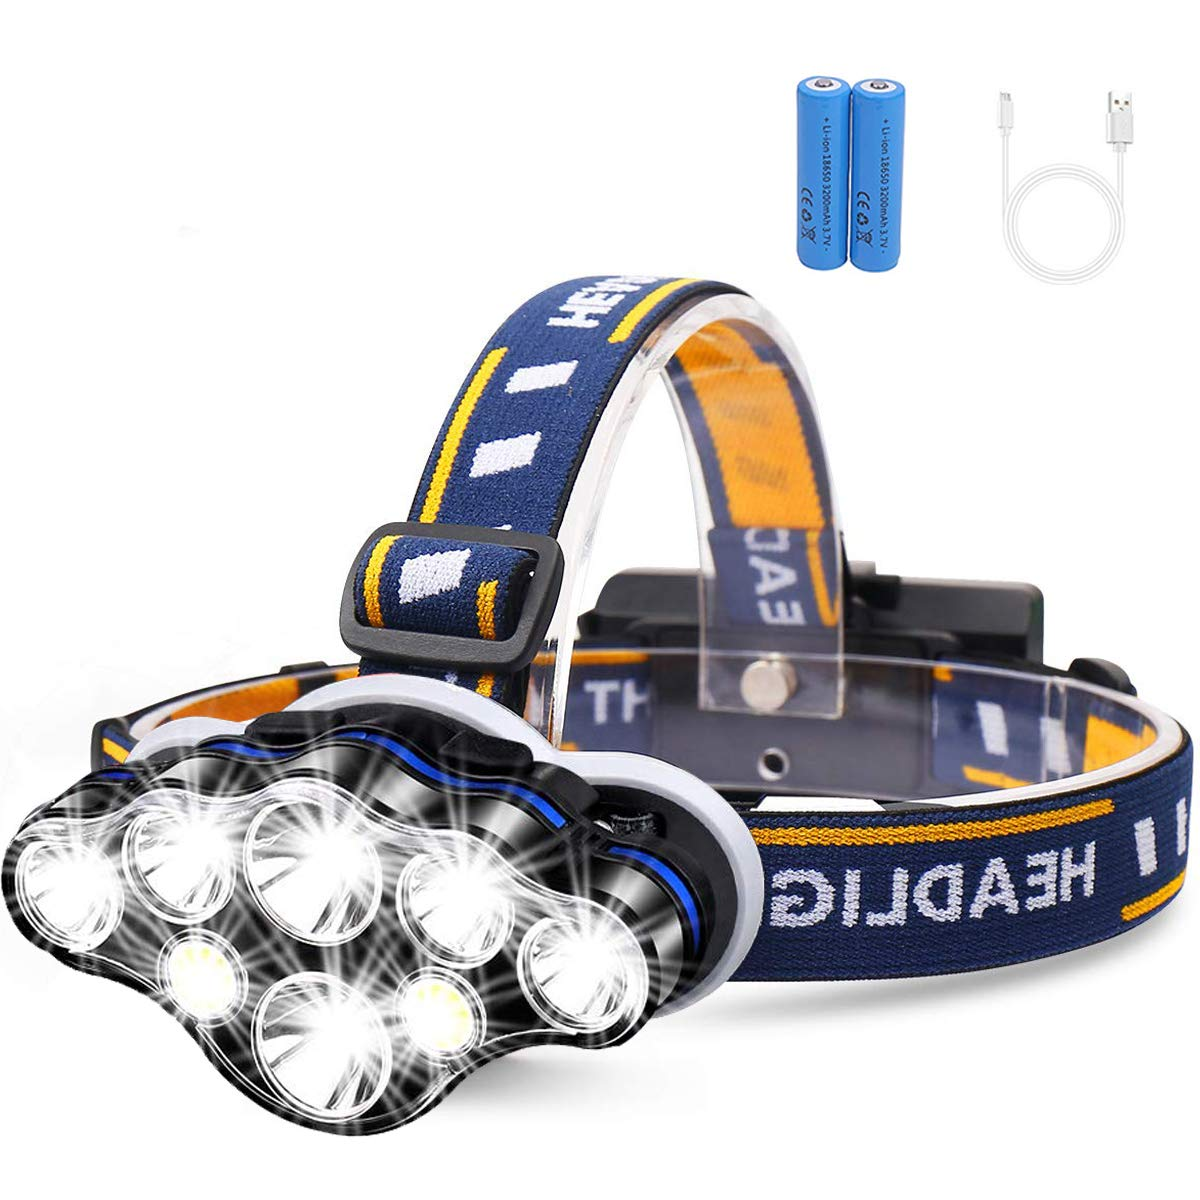 GM10201 8 LED USB 1000 lumen Rechargeable Headlamp